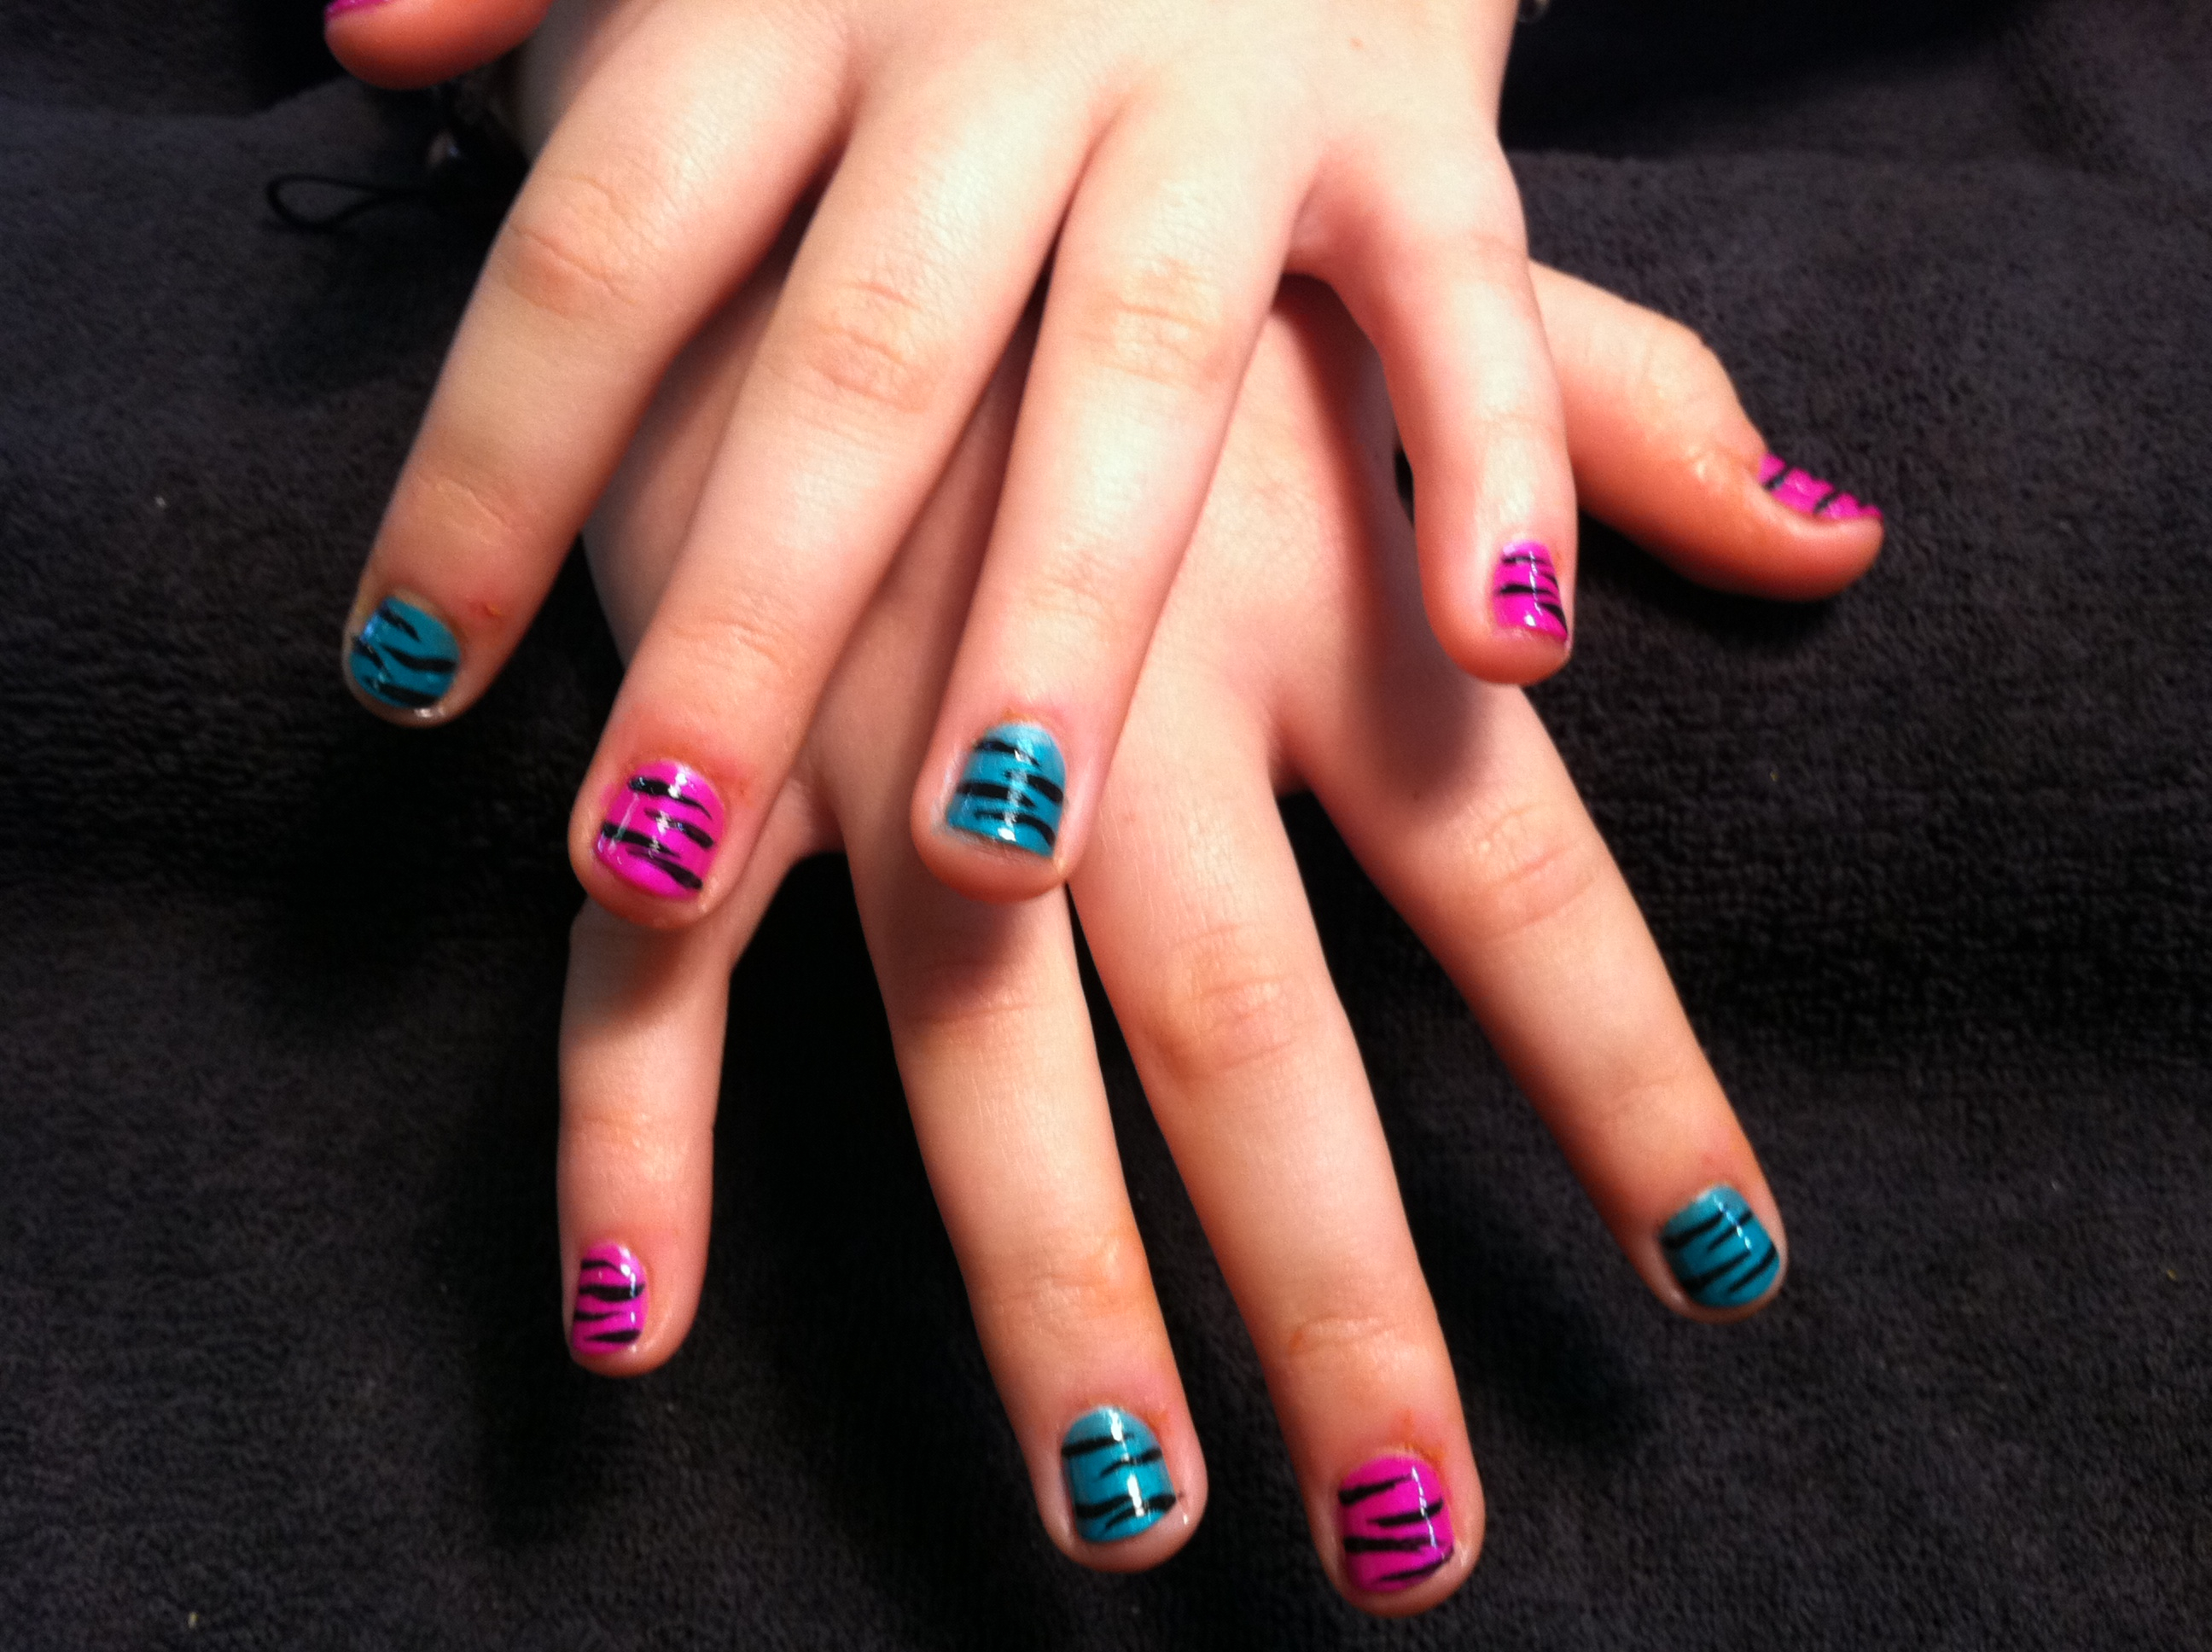 Nail art or not chic nail styles funky zebra bling on 11 year old star tennis player love them prinsesfo Choice Image